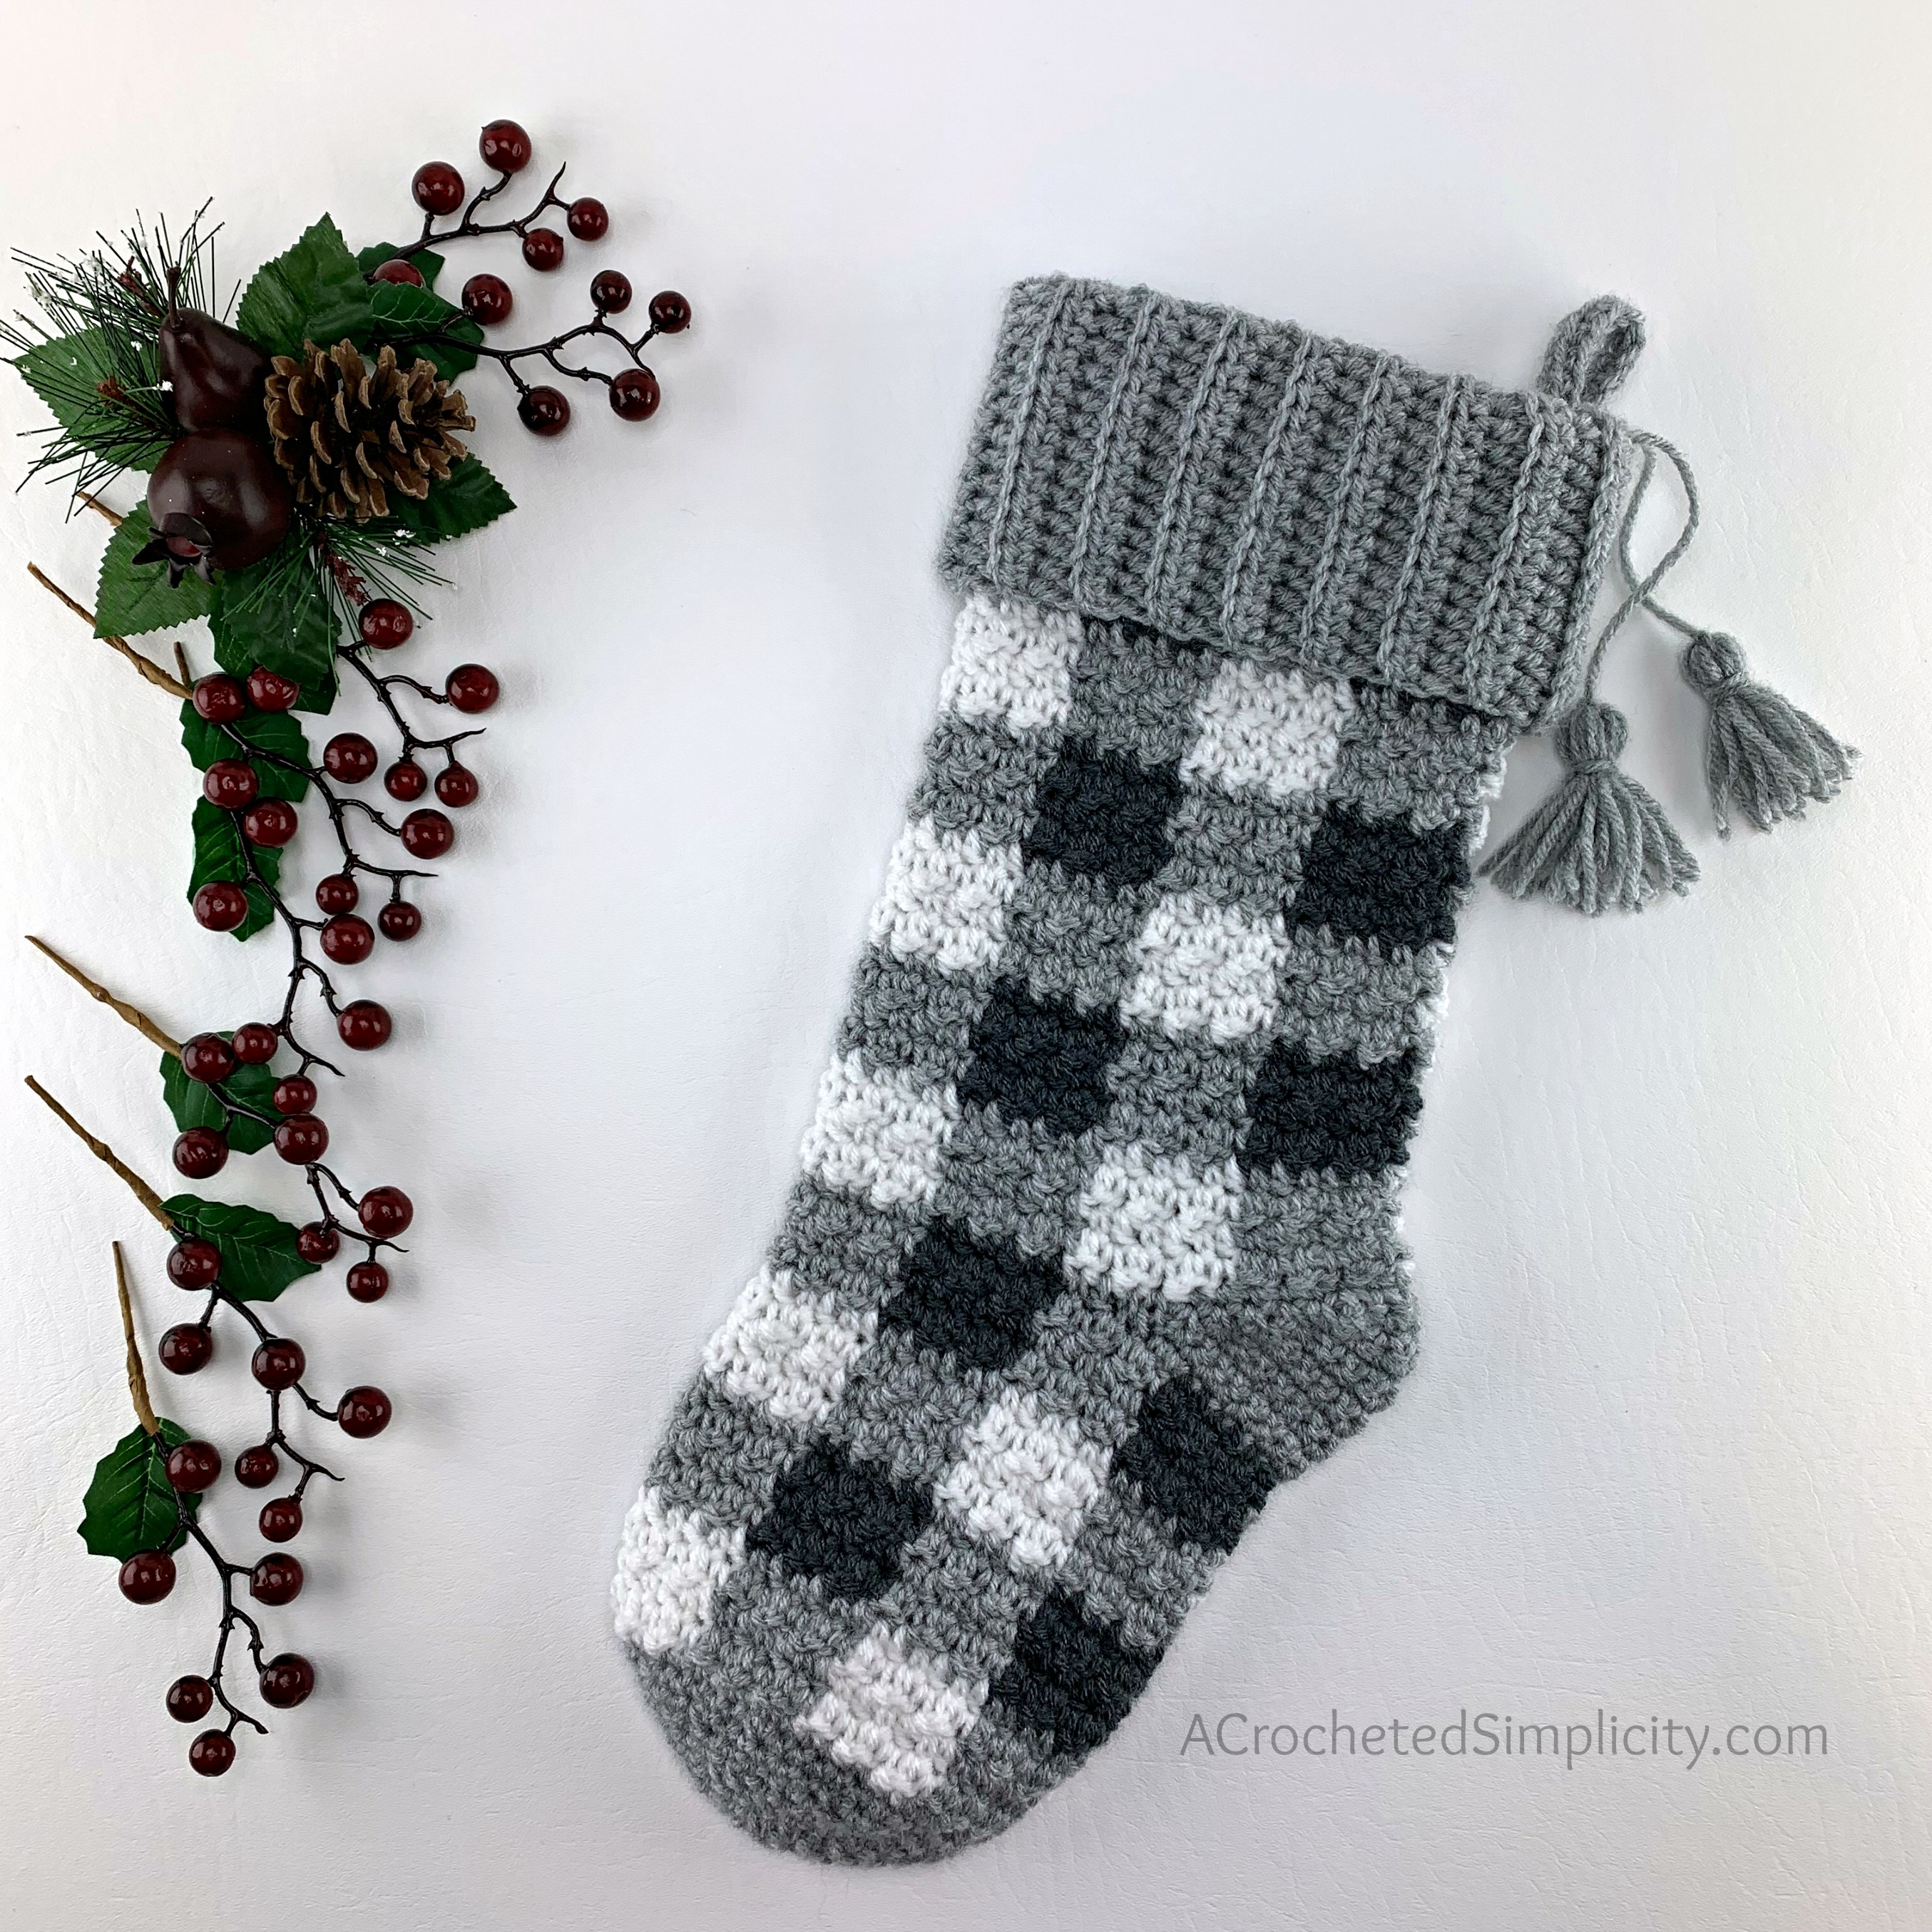 Free Crochet Stocking Pattern - Buffalo Plaid Christmas Stocking by A Crocheted Simplicity #crochetplaid #crochetstocking #plaidstocking #farmhouseplaid #farmhousecrochet #crochetchristmas #crochetchristmasstocking #freecrochetpattern #crochet #handmadestocking #handmadechristmas